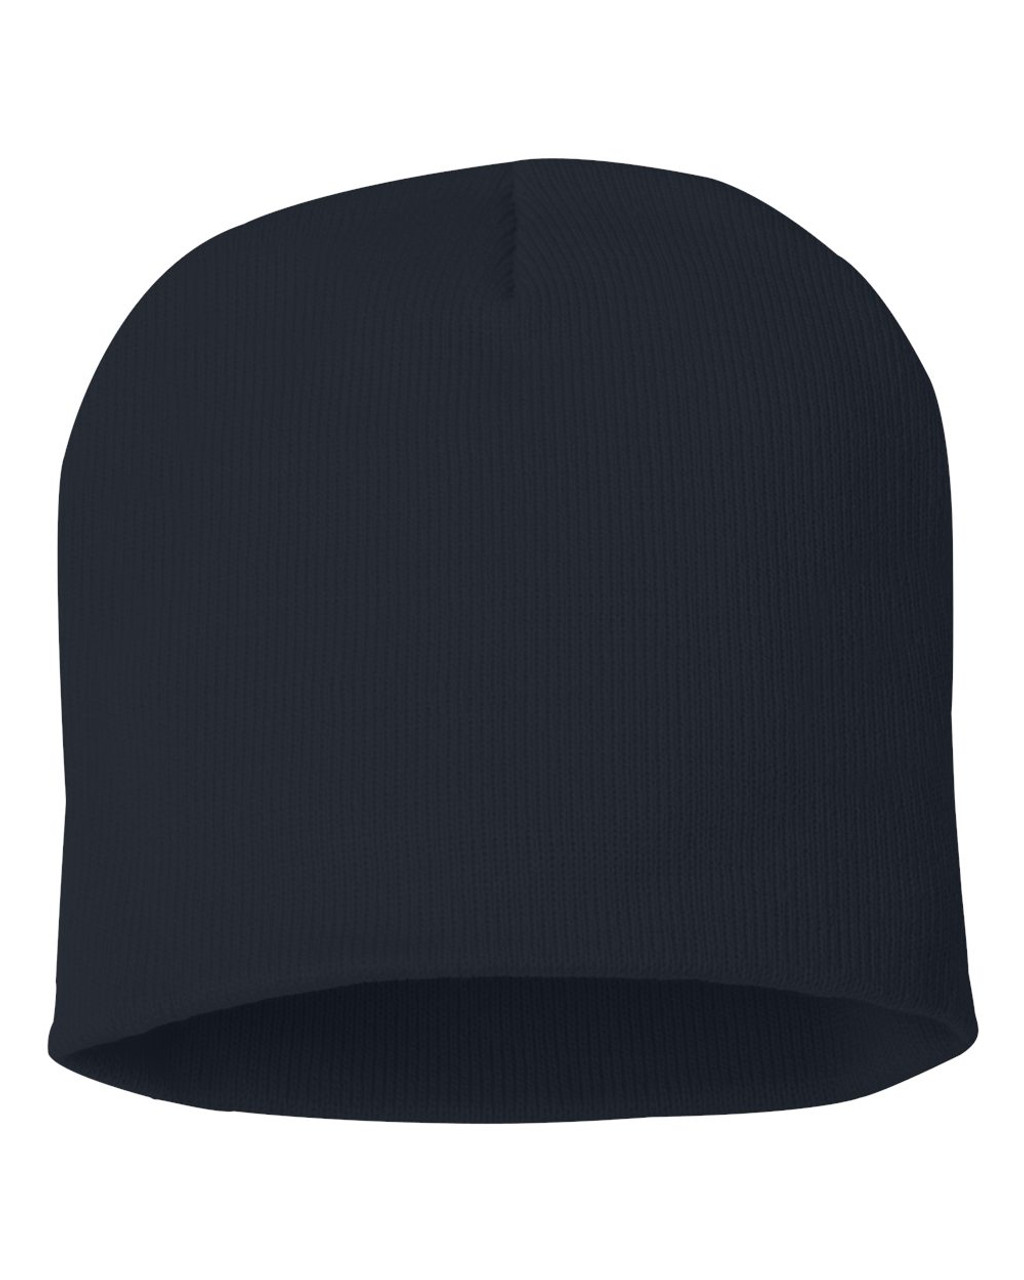 "Navy - SP08 Sportsman Acrylic Knit 8"" Toque 